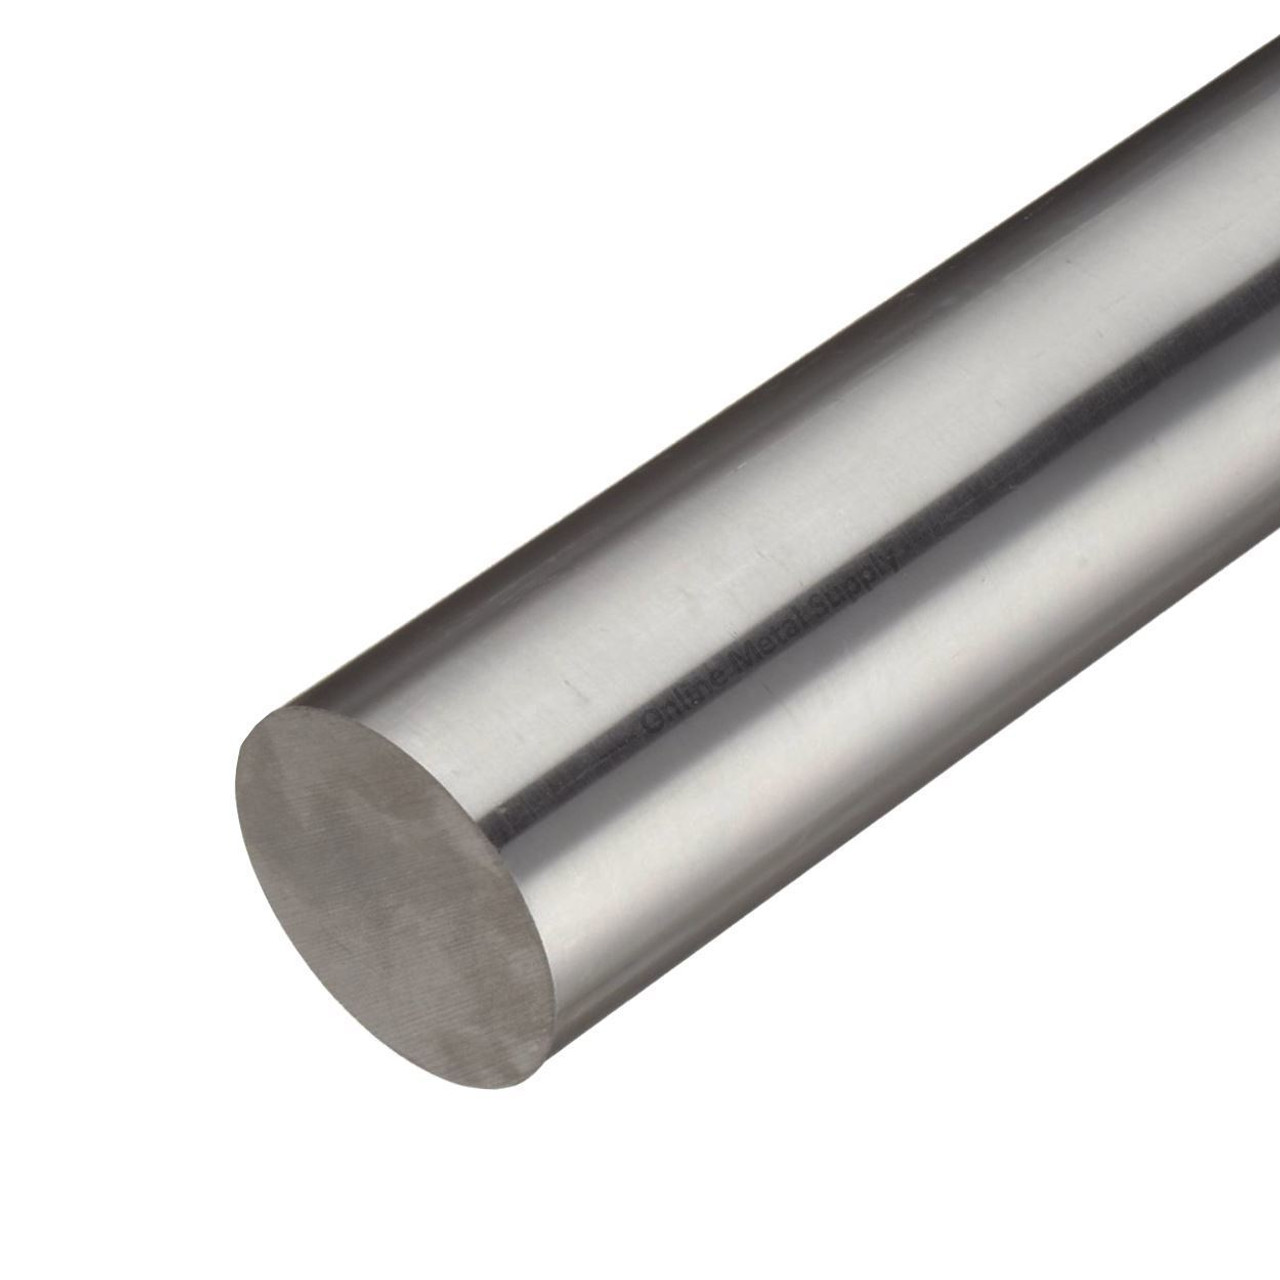 17-4 Stainless Steel Round Rod, 1.125 (1-1/8 inch) x 72 inches